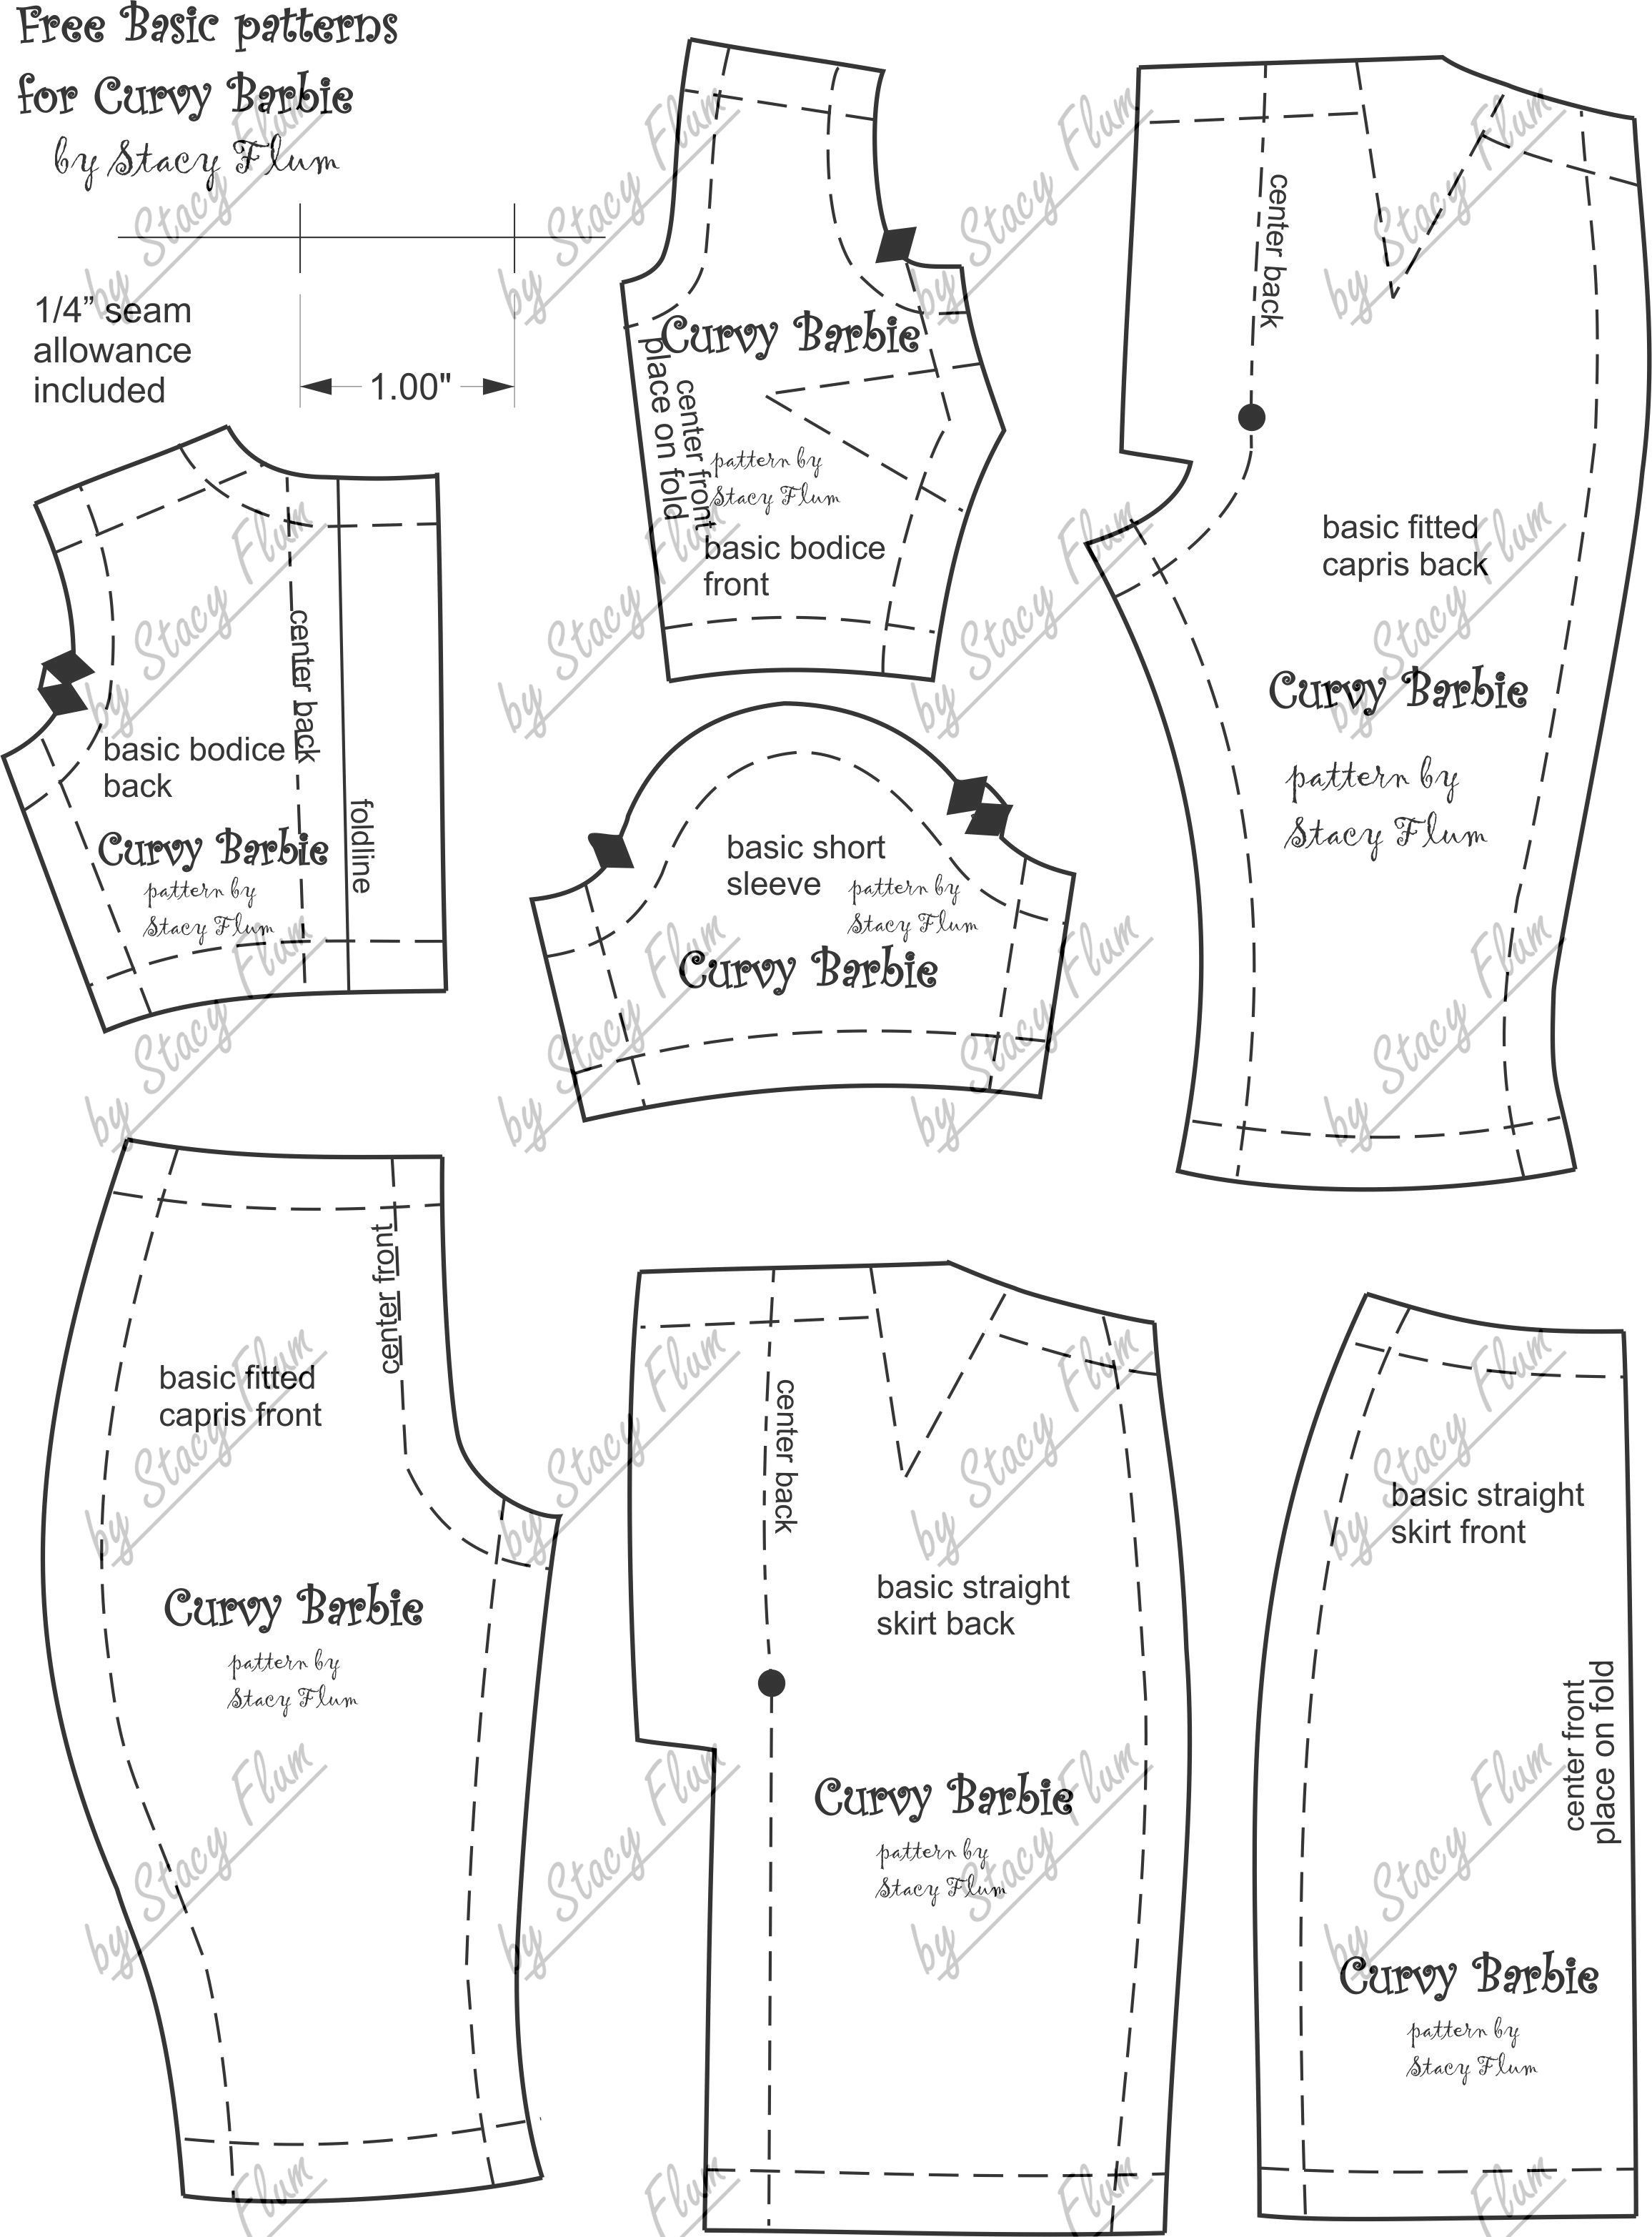 Free pattern for Curvy Barbie. | barbie and other fashion dolls ...